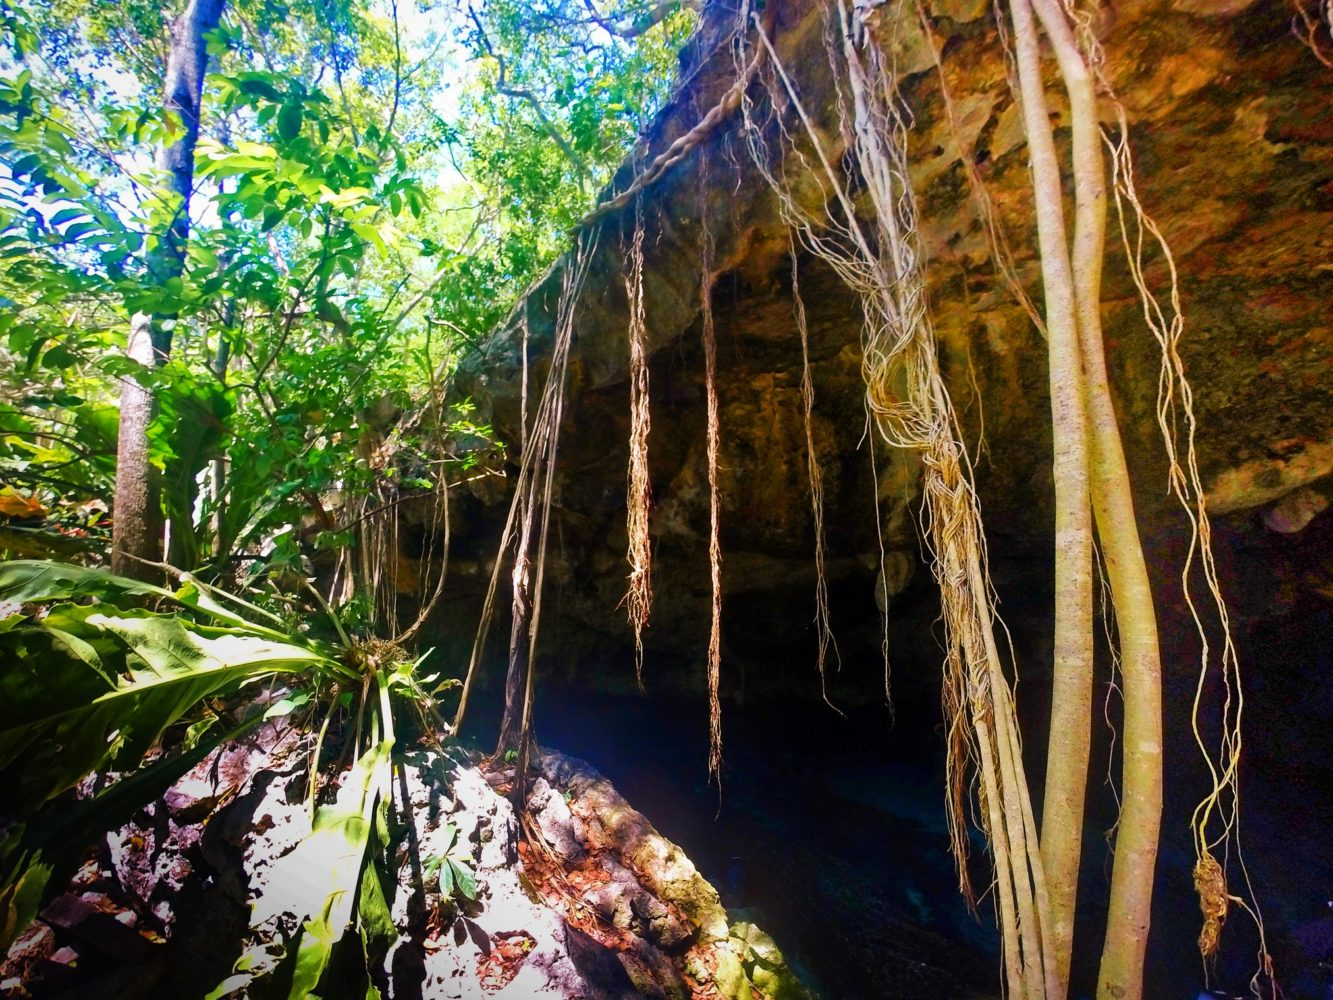 Roots growing over Mouth of Cenotes Dos Ojos Playa del Carmen Mexico